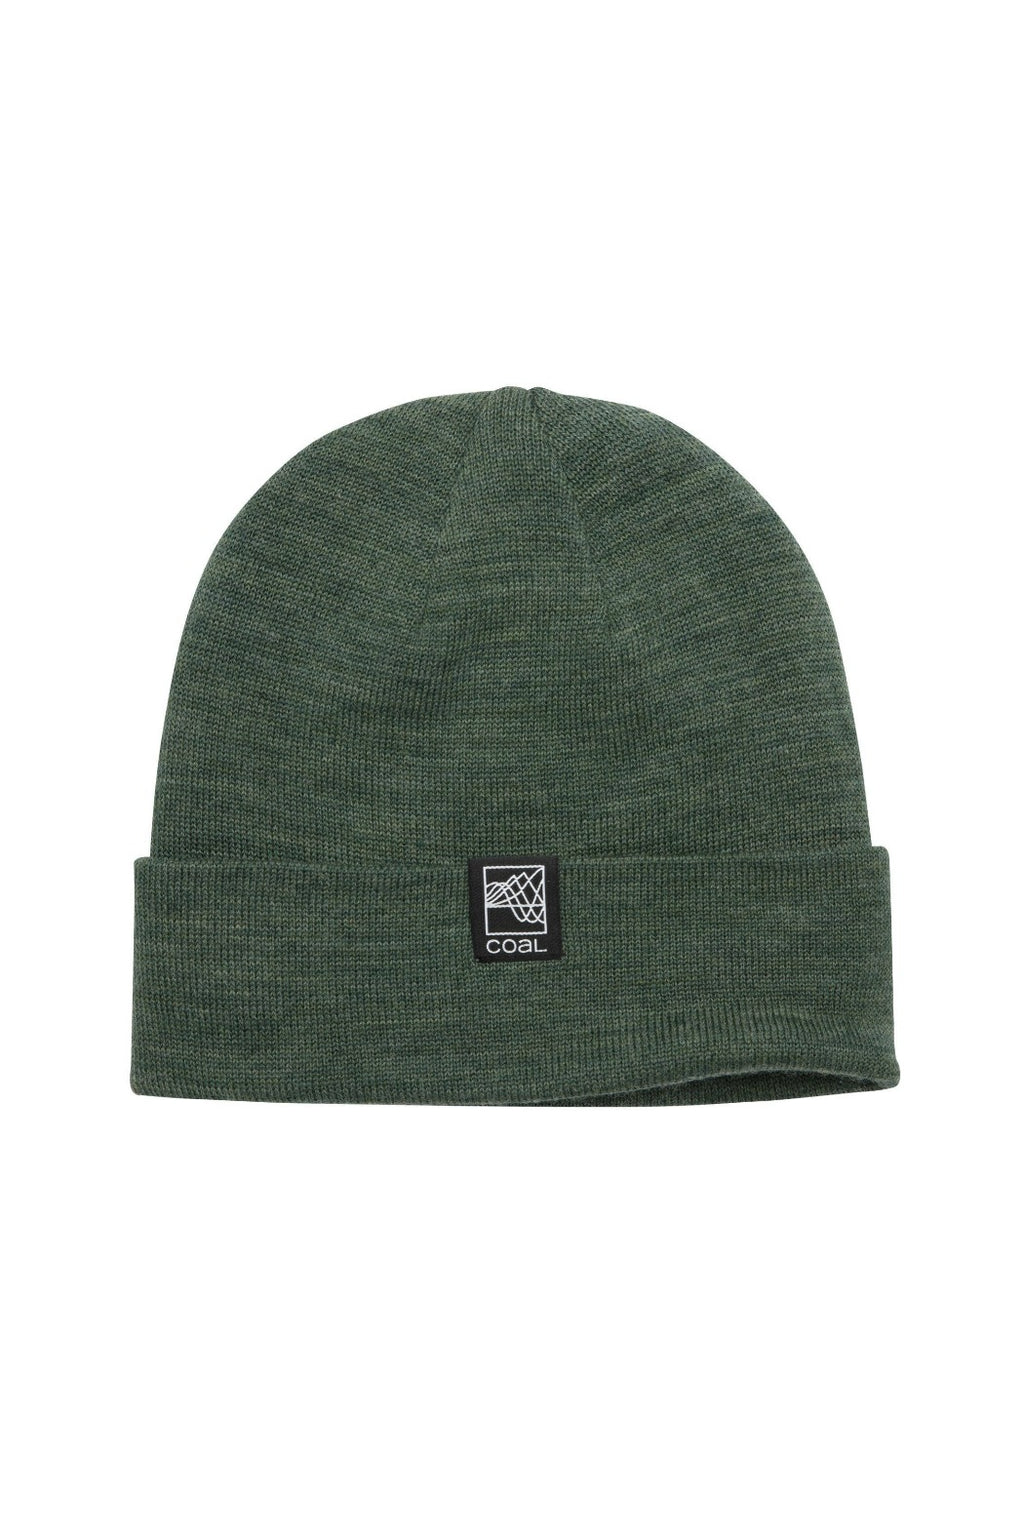 Coal Mesa Beanie - Heather Olive